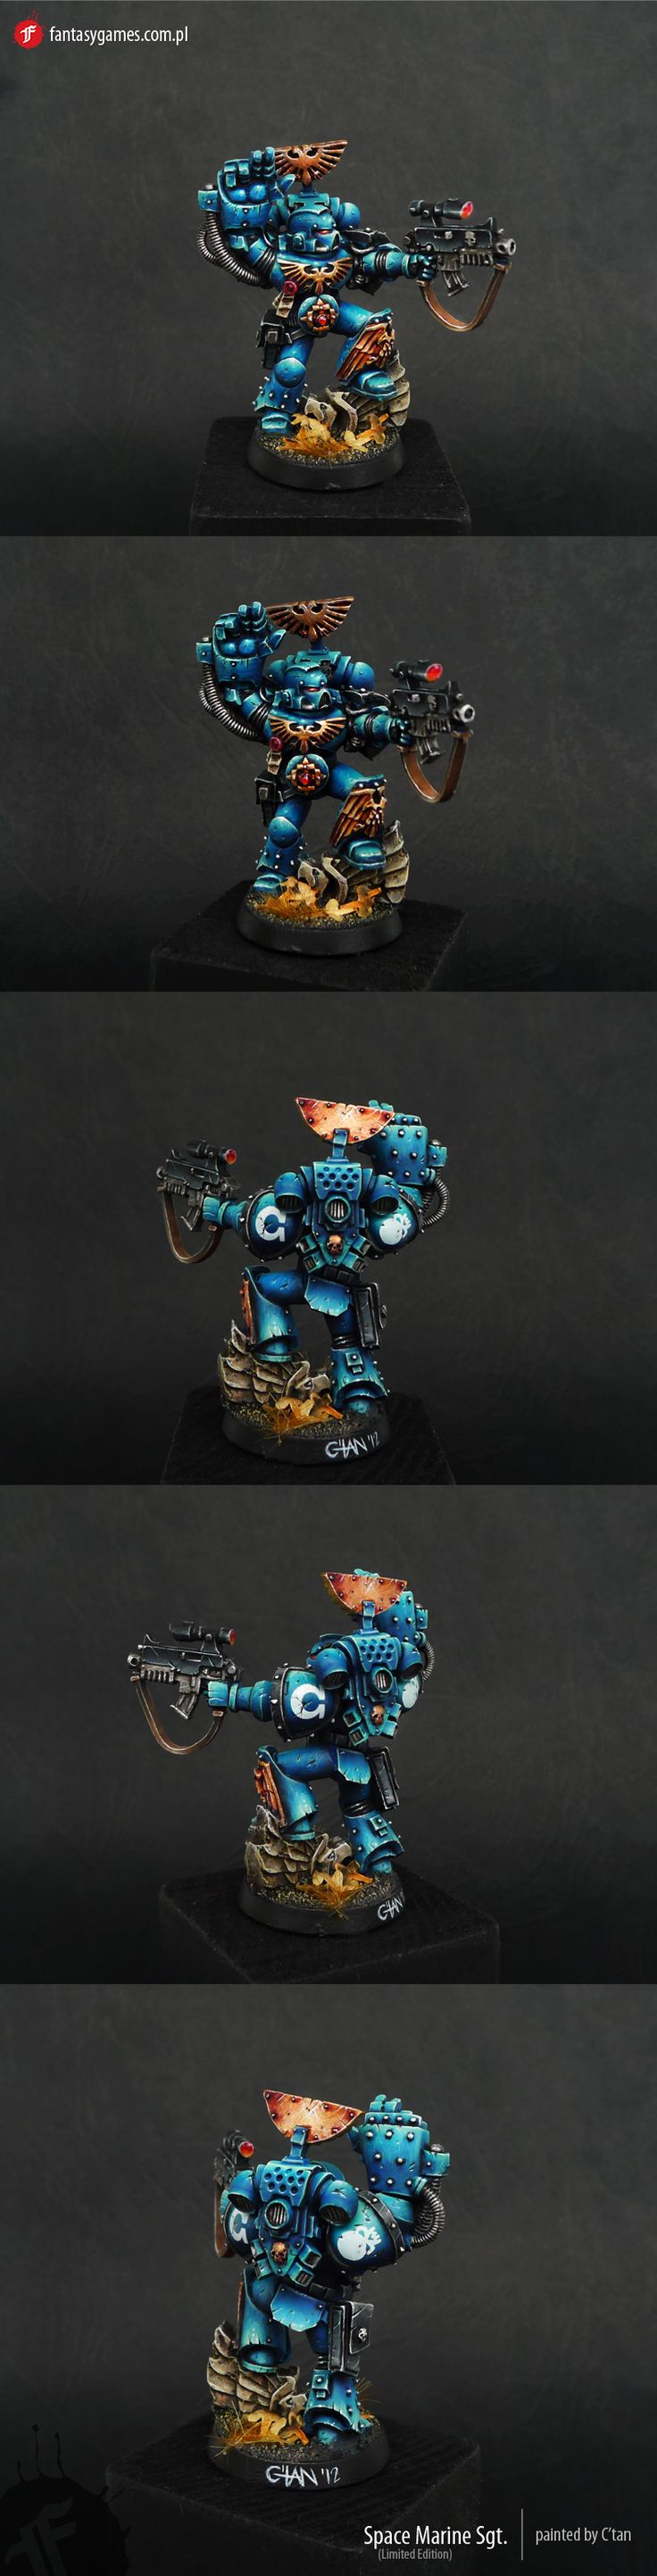 CoolMiniOrNot - Space Marine Sergeant (Web Exclusive) by fantasygames.com.pl